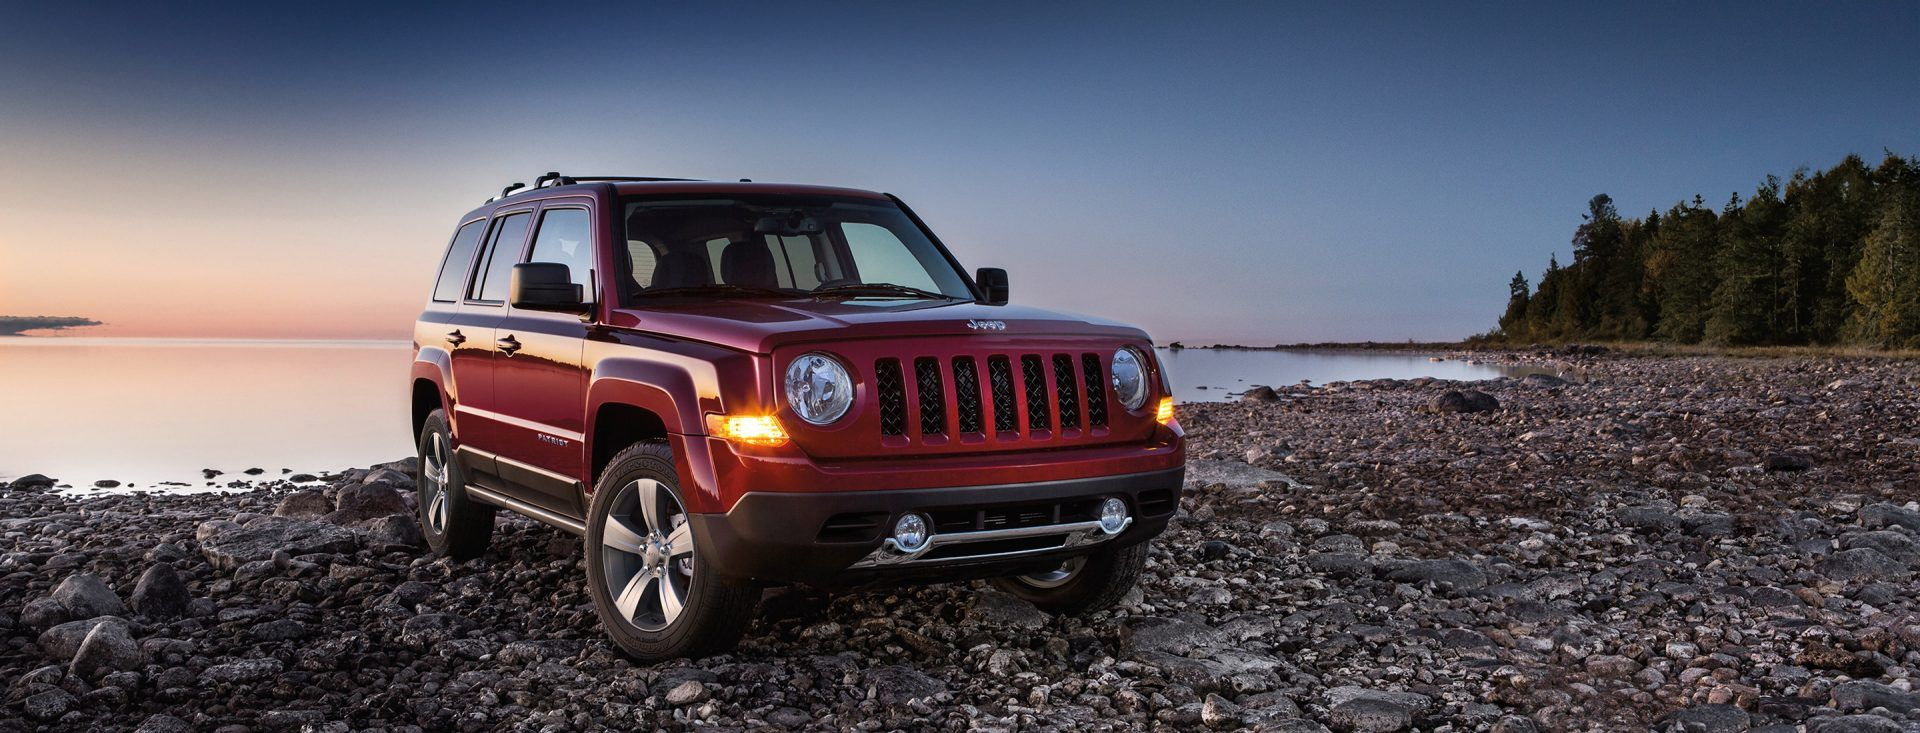 2017 Jeep Patriot 215 Month 39 Month Lease 10 000 Miles Year